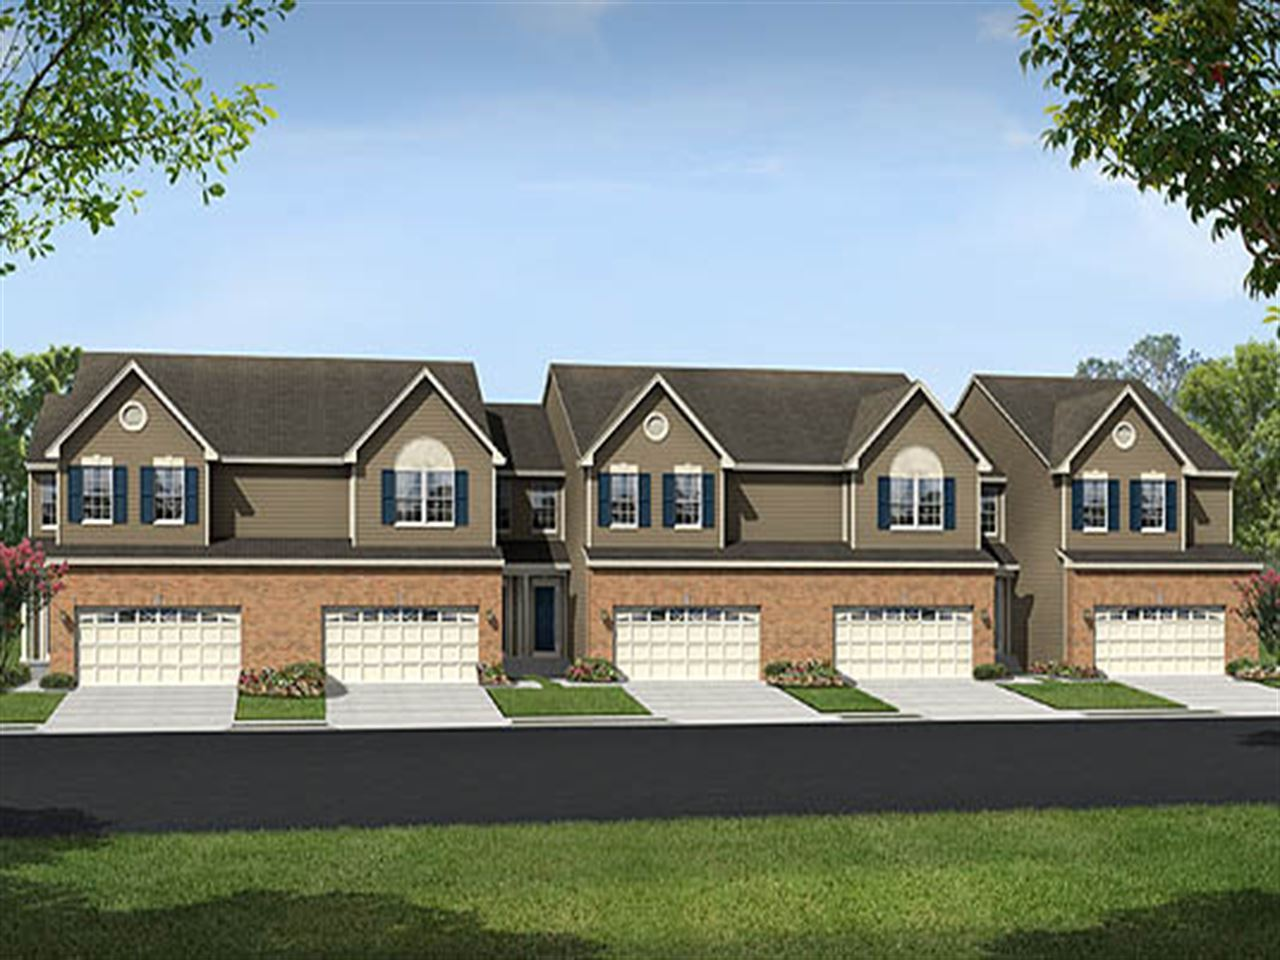 Ridgeway - Beech Creek 2 Car Garage Villas: Aberdeen, MD - Ryland Homes